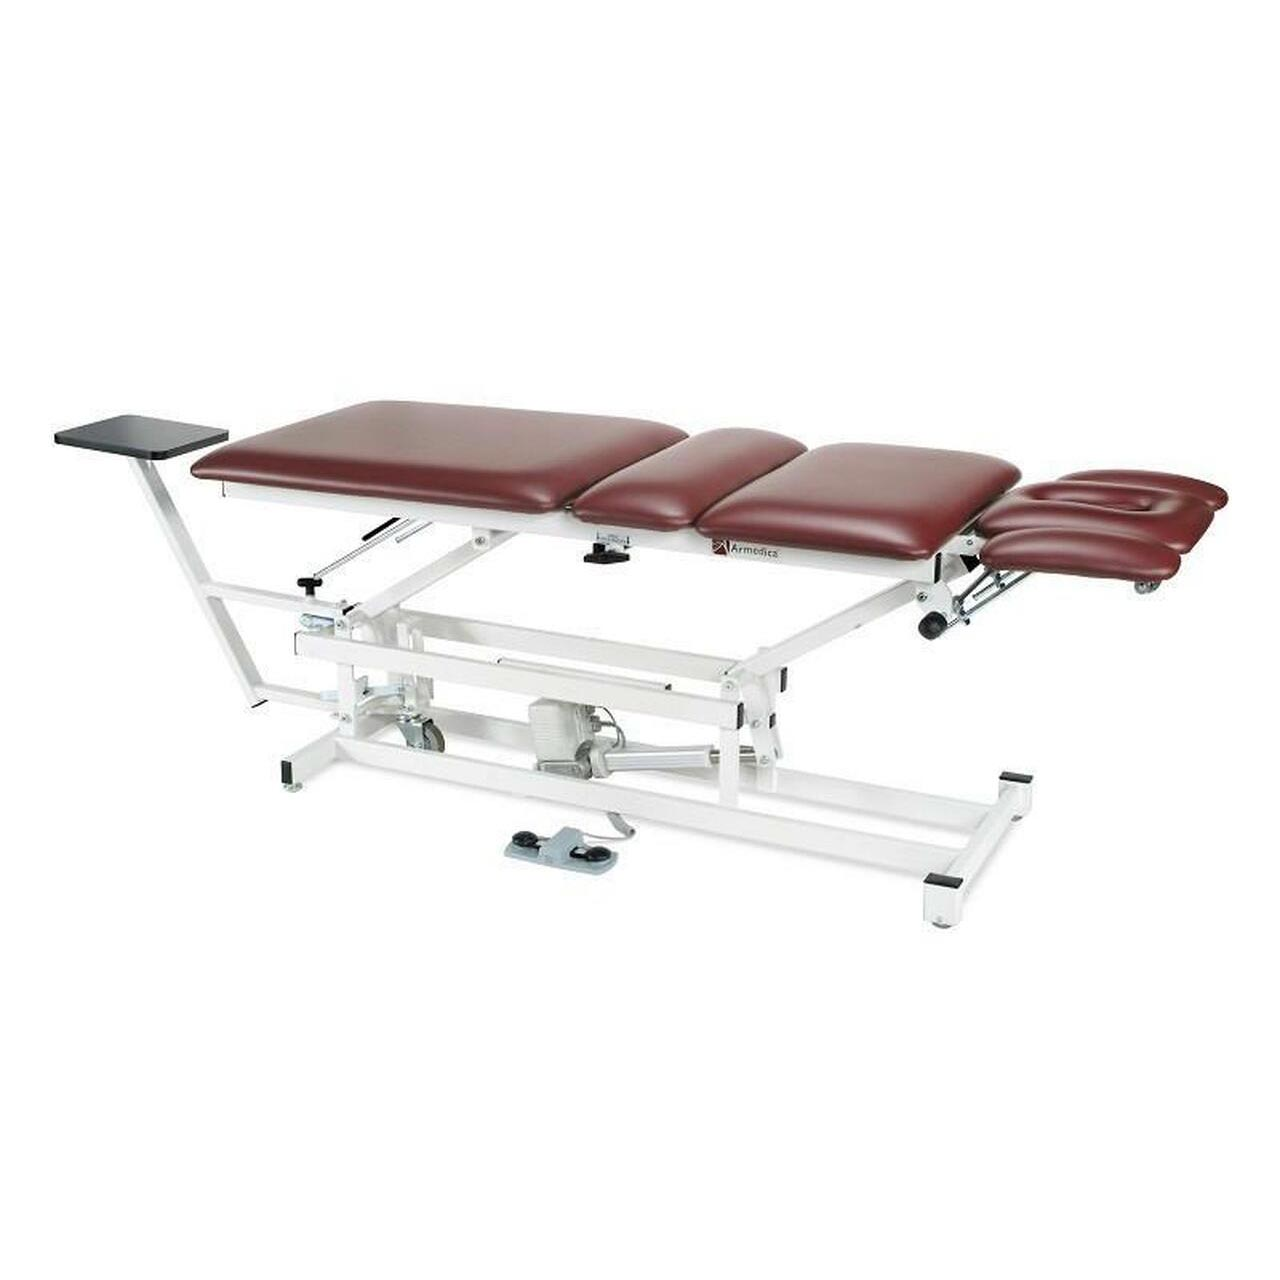 Armedica AM-450 traction table